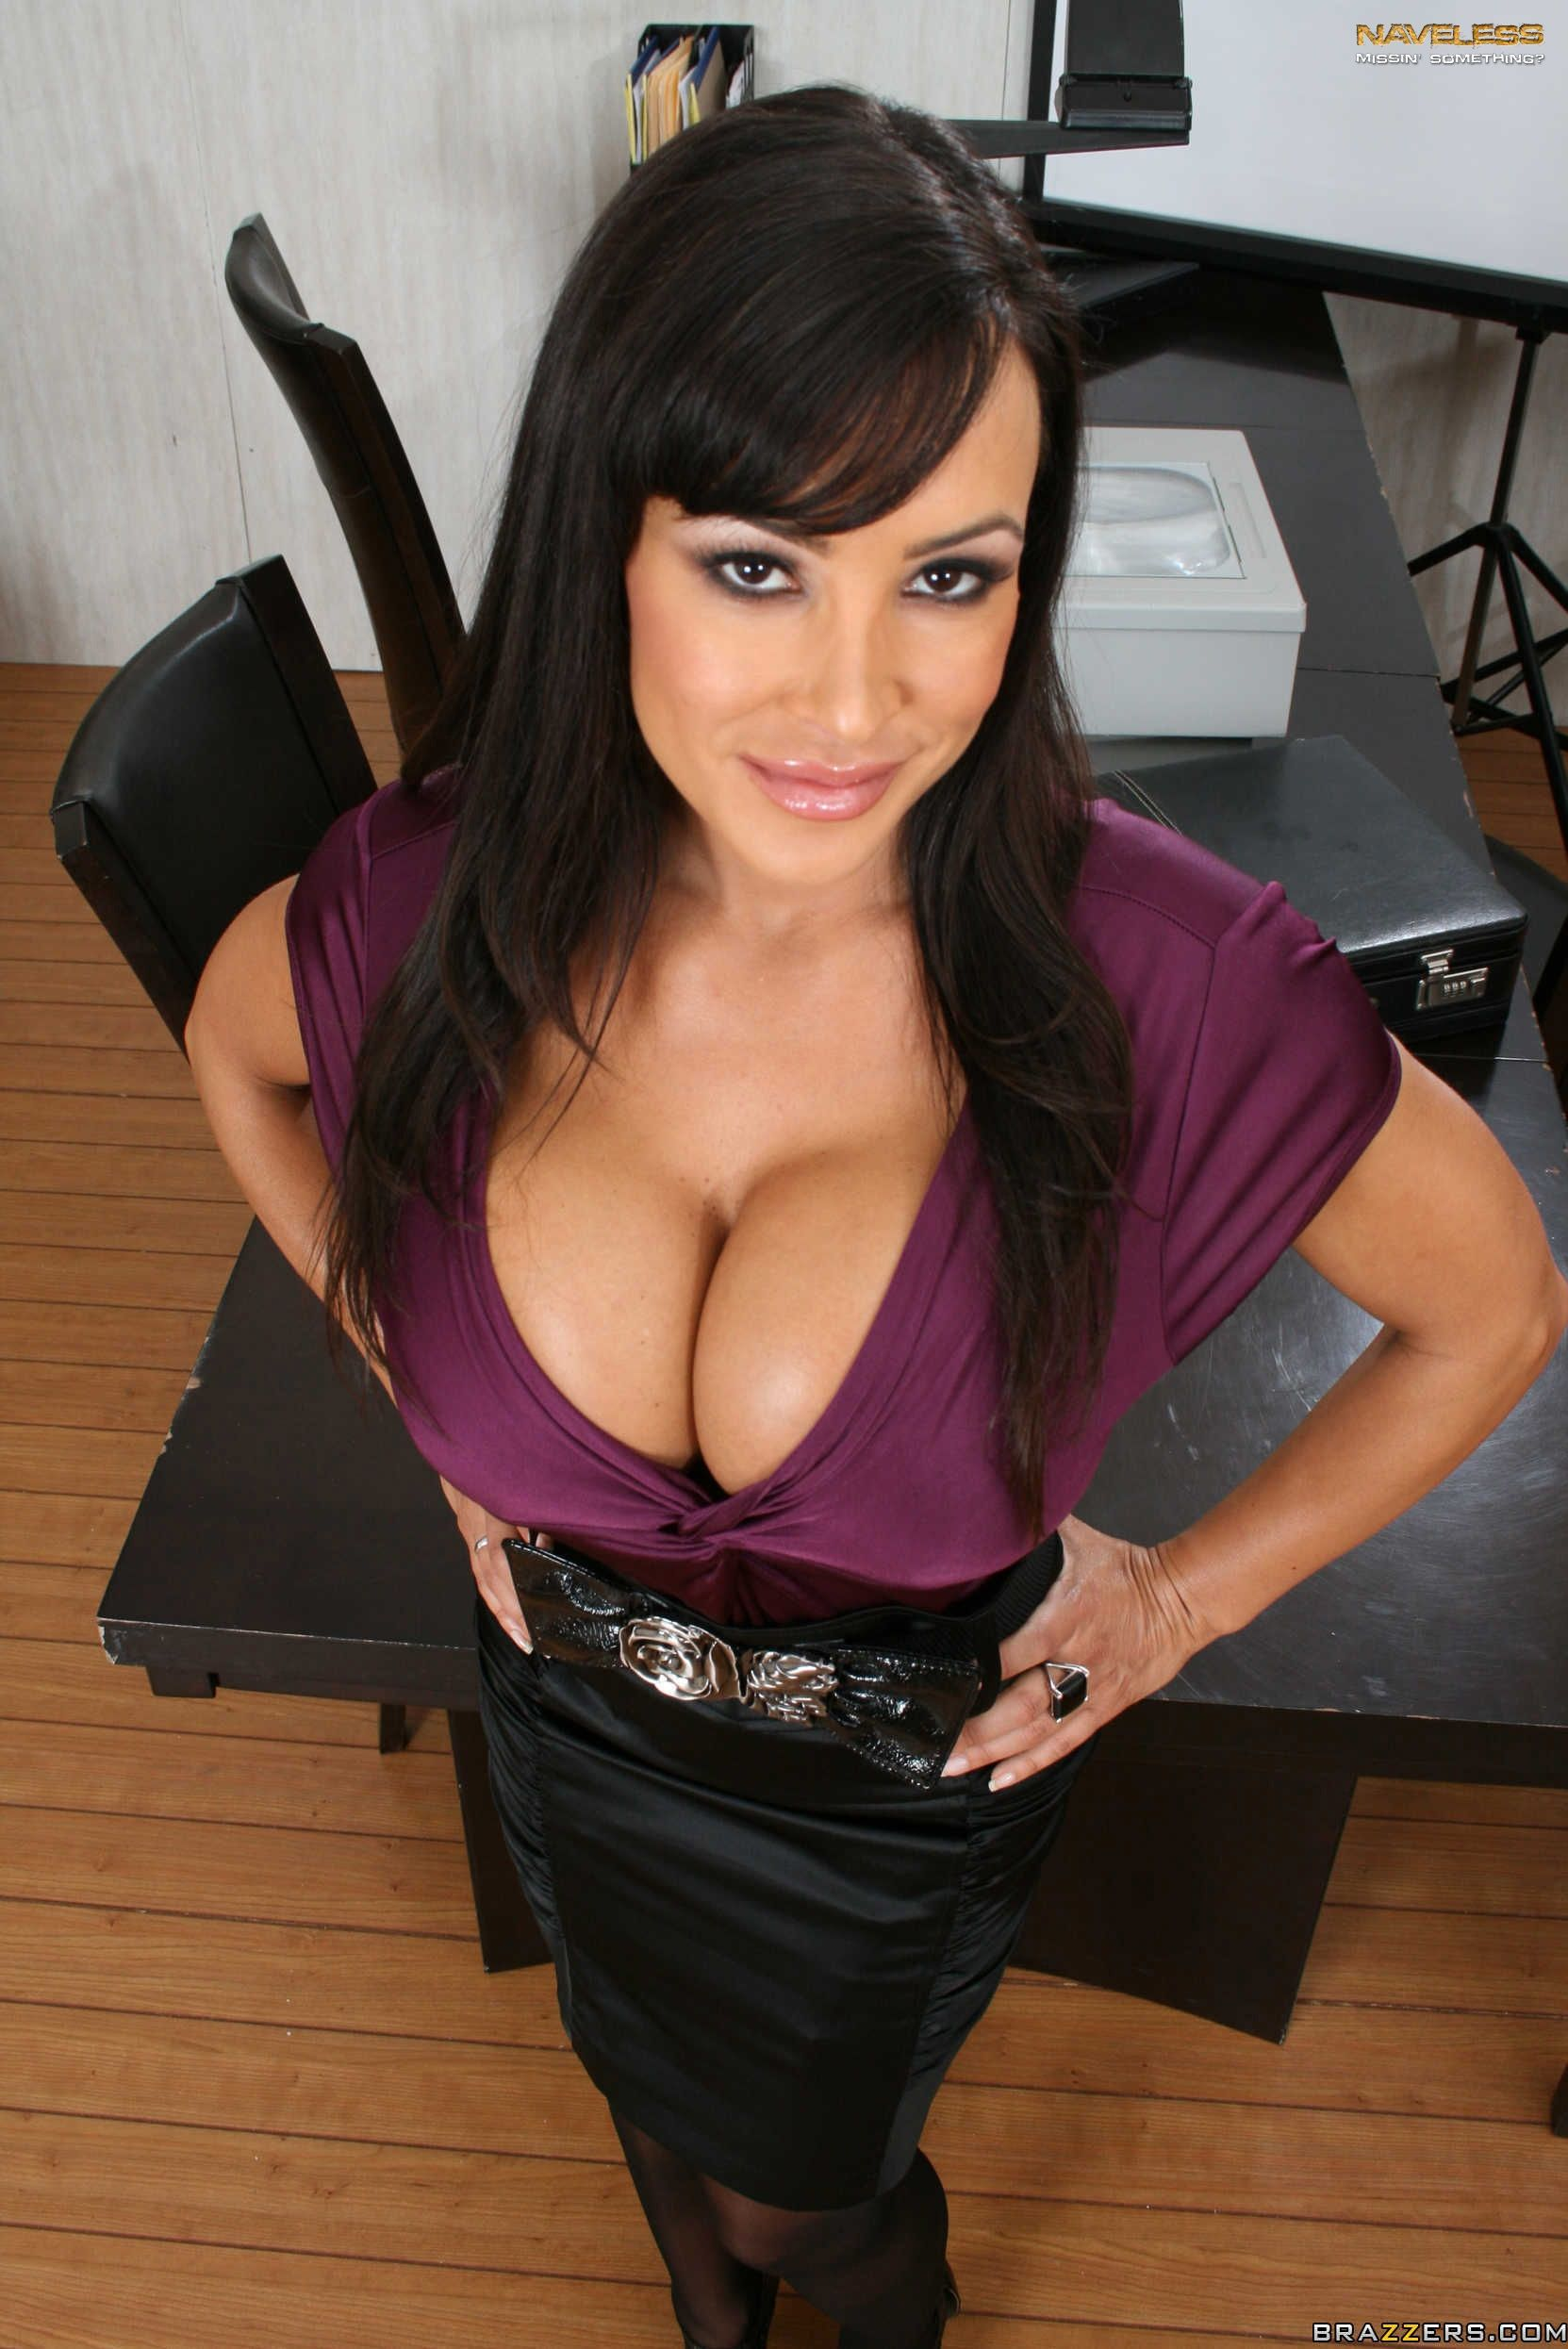 Venus Milf Hunter Complete lisa ann | lisa ann @ naveless | gallery 1 | image 1 of 16